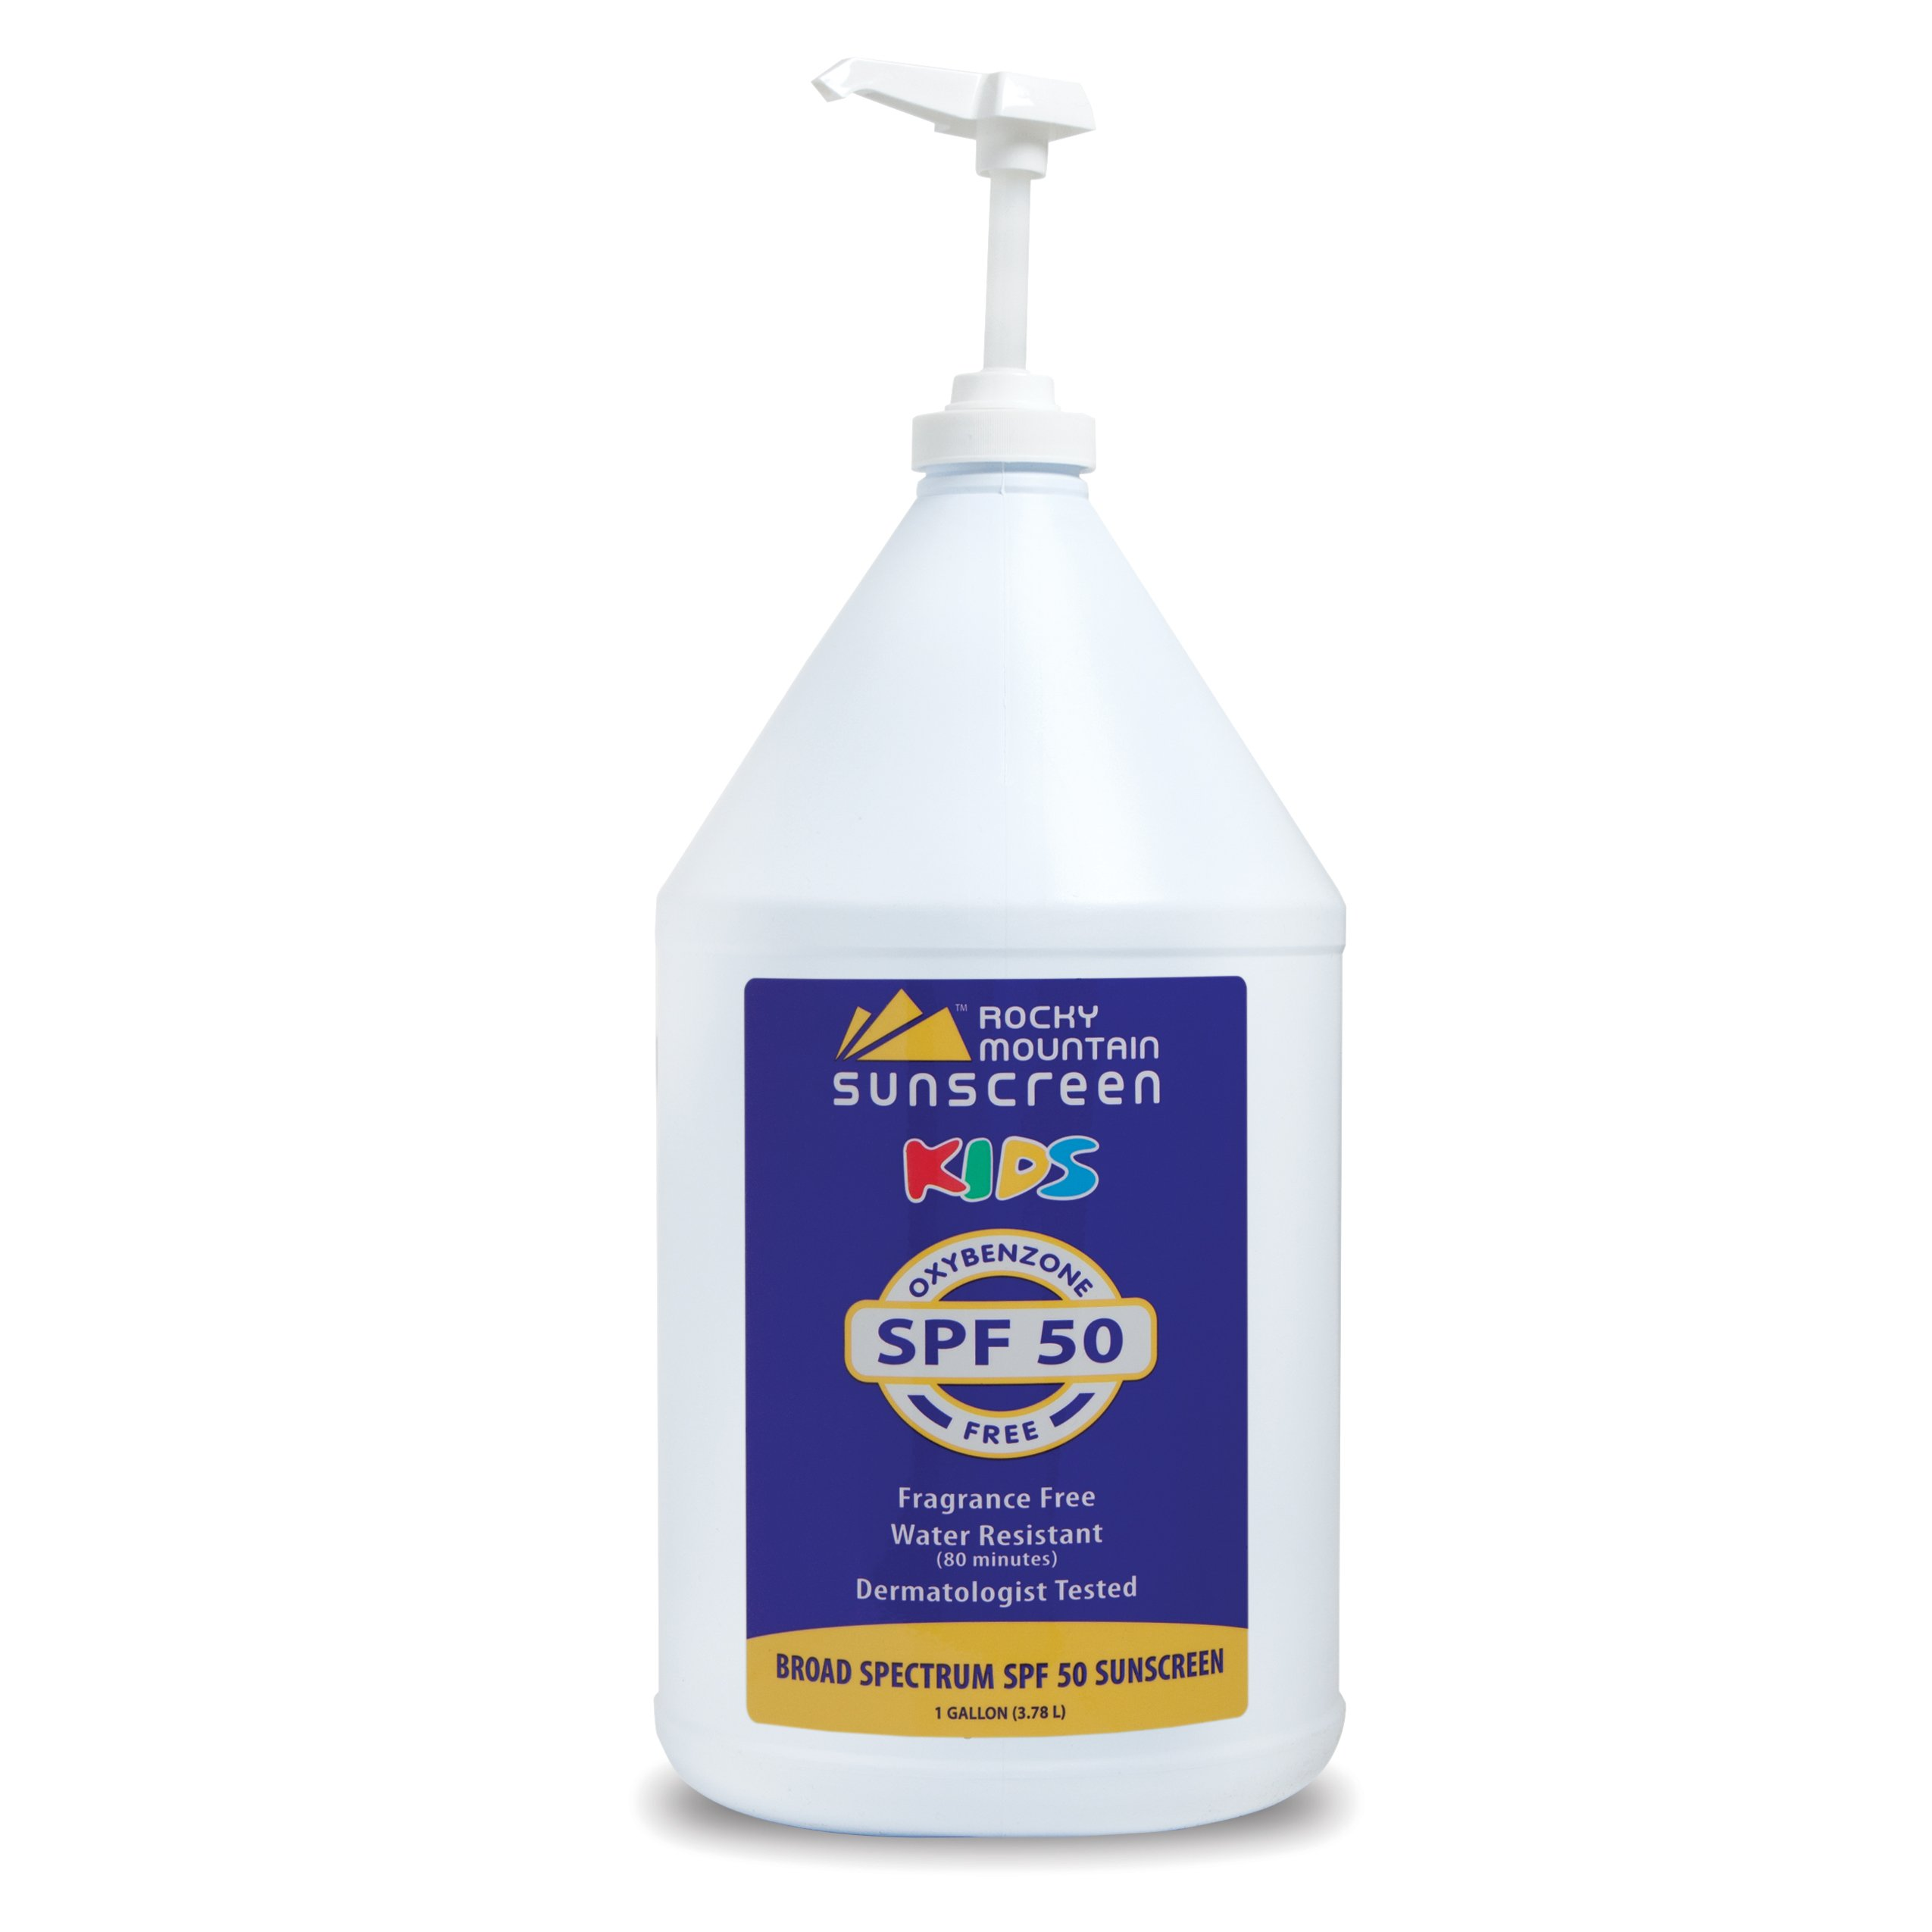 Rocky Mountain Sunscreen - Kids, Gallon, SPF 50 - Oxybenzone Free - Gluten Free - Broad Spectrum and 80 Minute Water Resistant Bulk Lotion